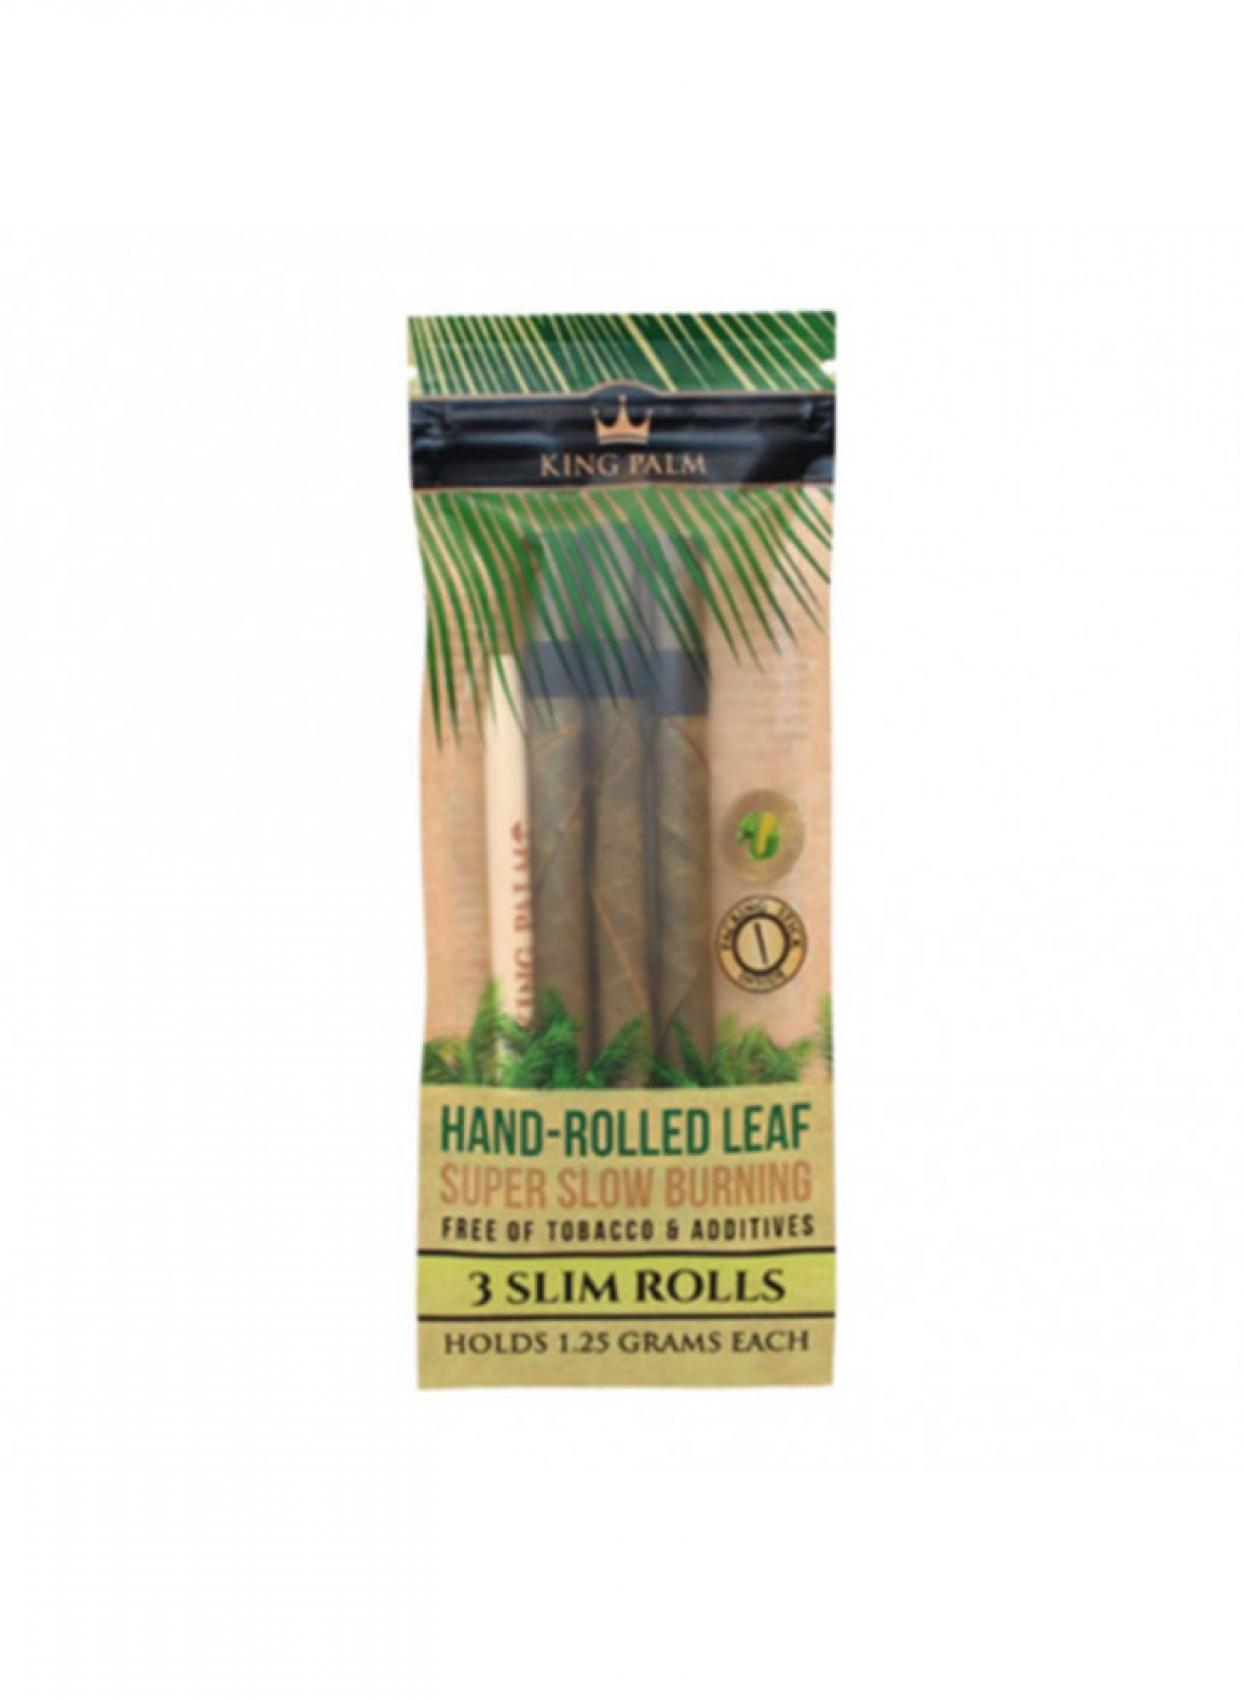 King Palm Slim Rolls 3x Hand Rolled Leaf